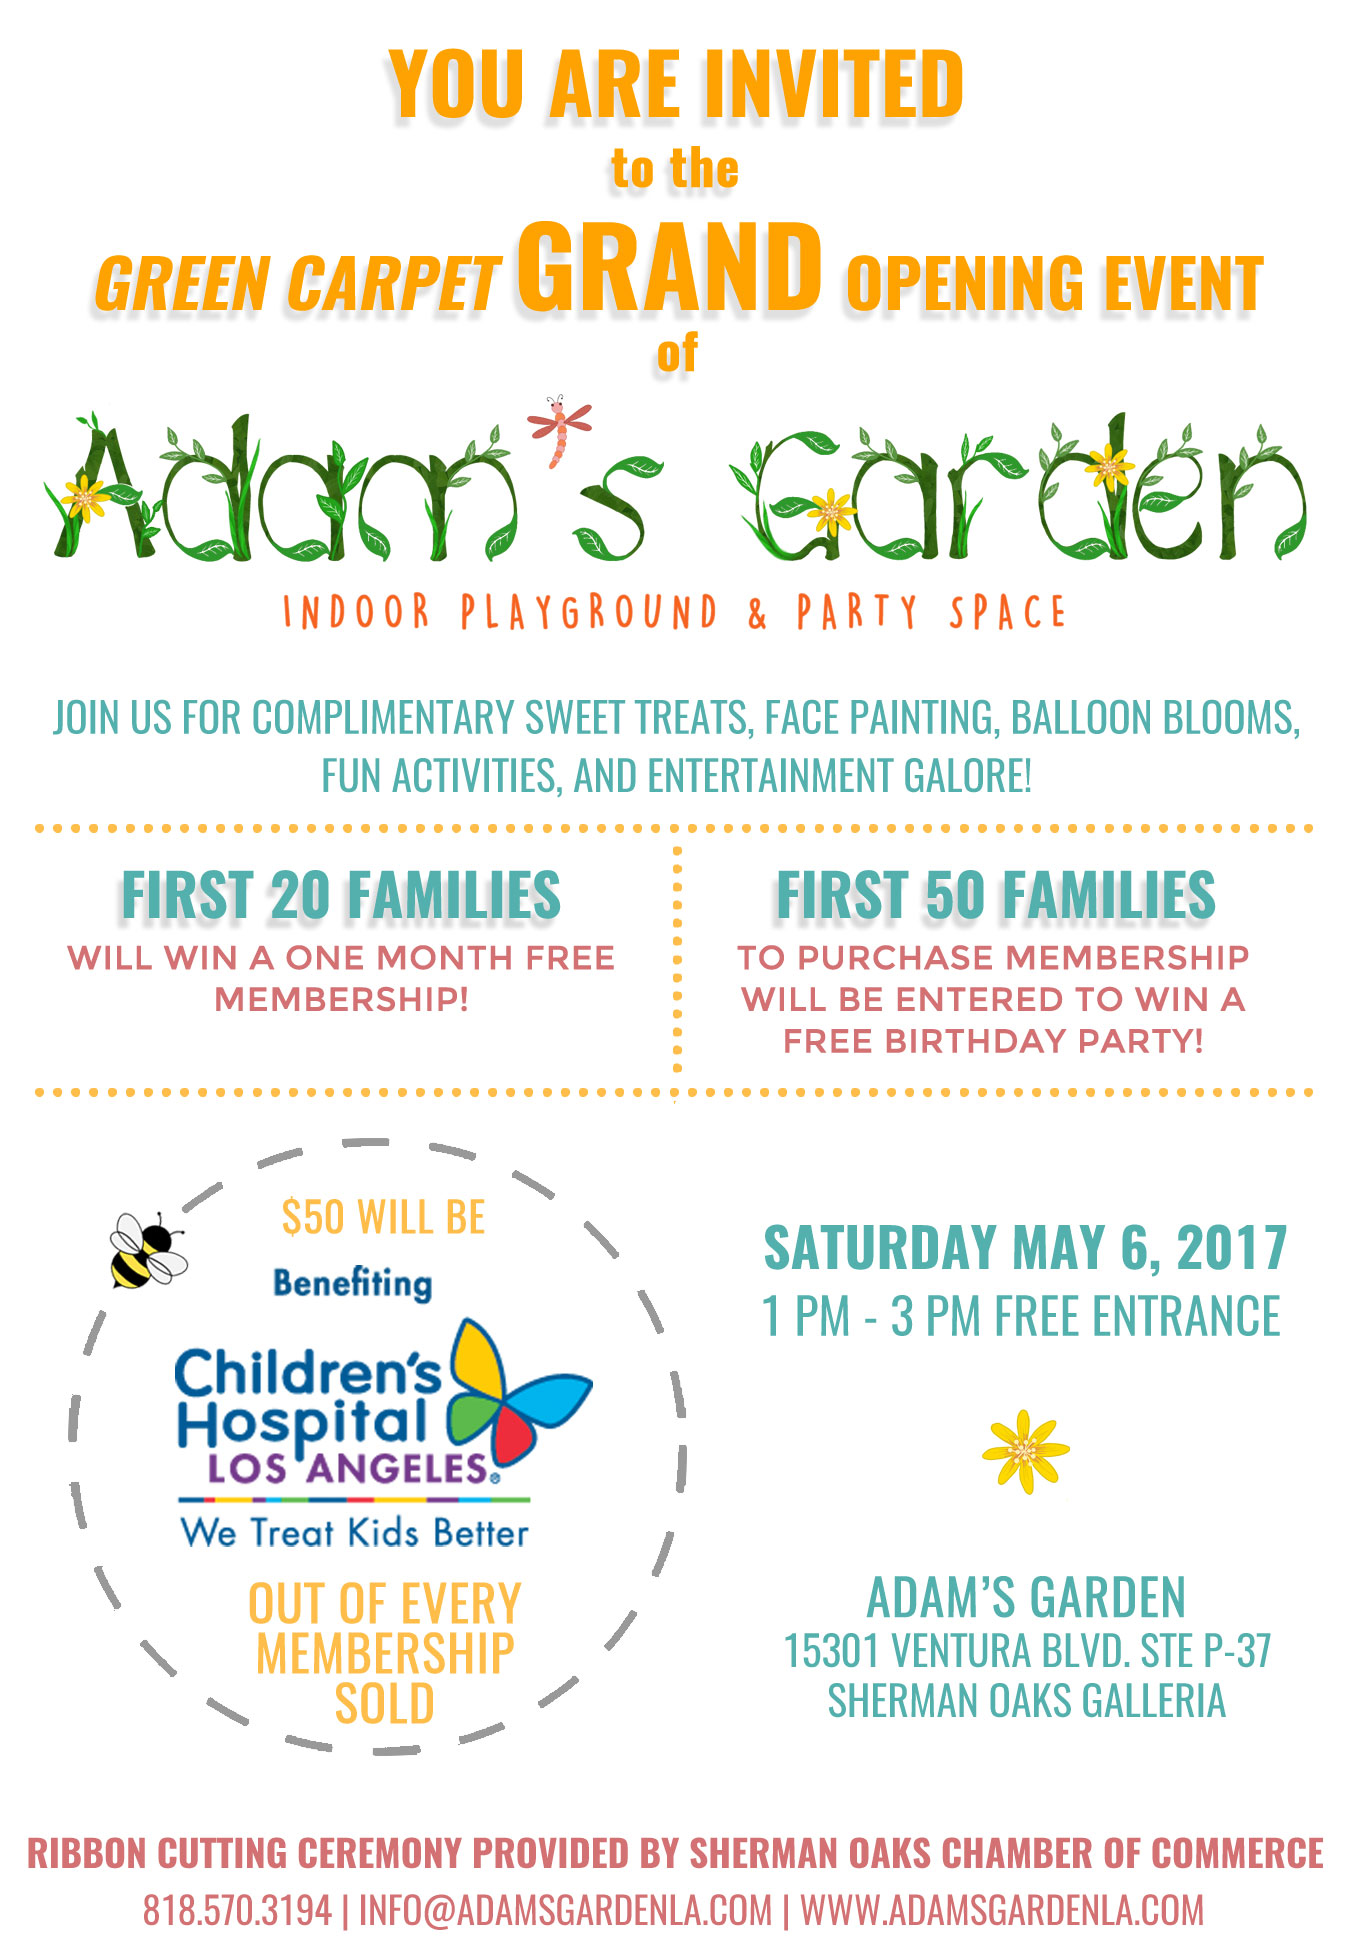 Adams garden launches first location at sherman oaks galleria invitation stopboris Image collections